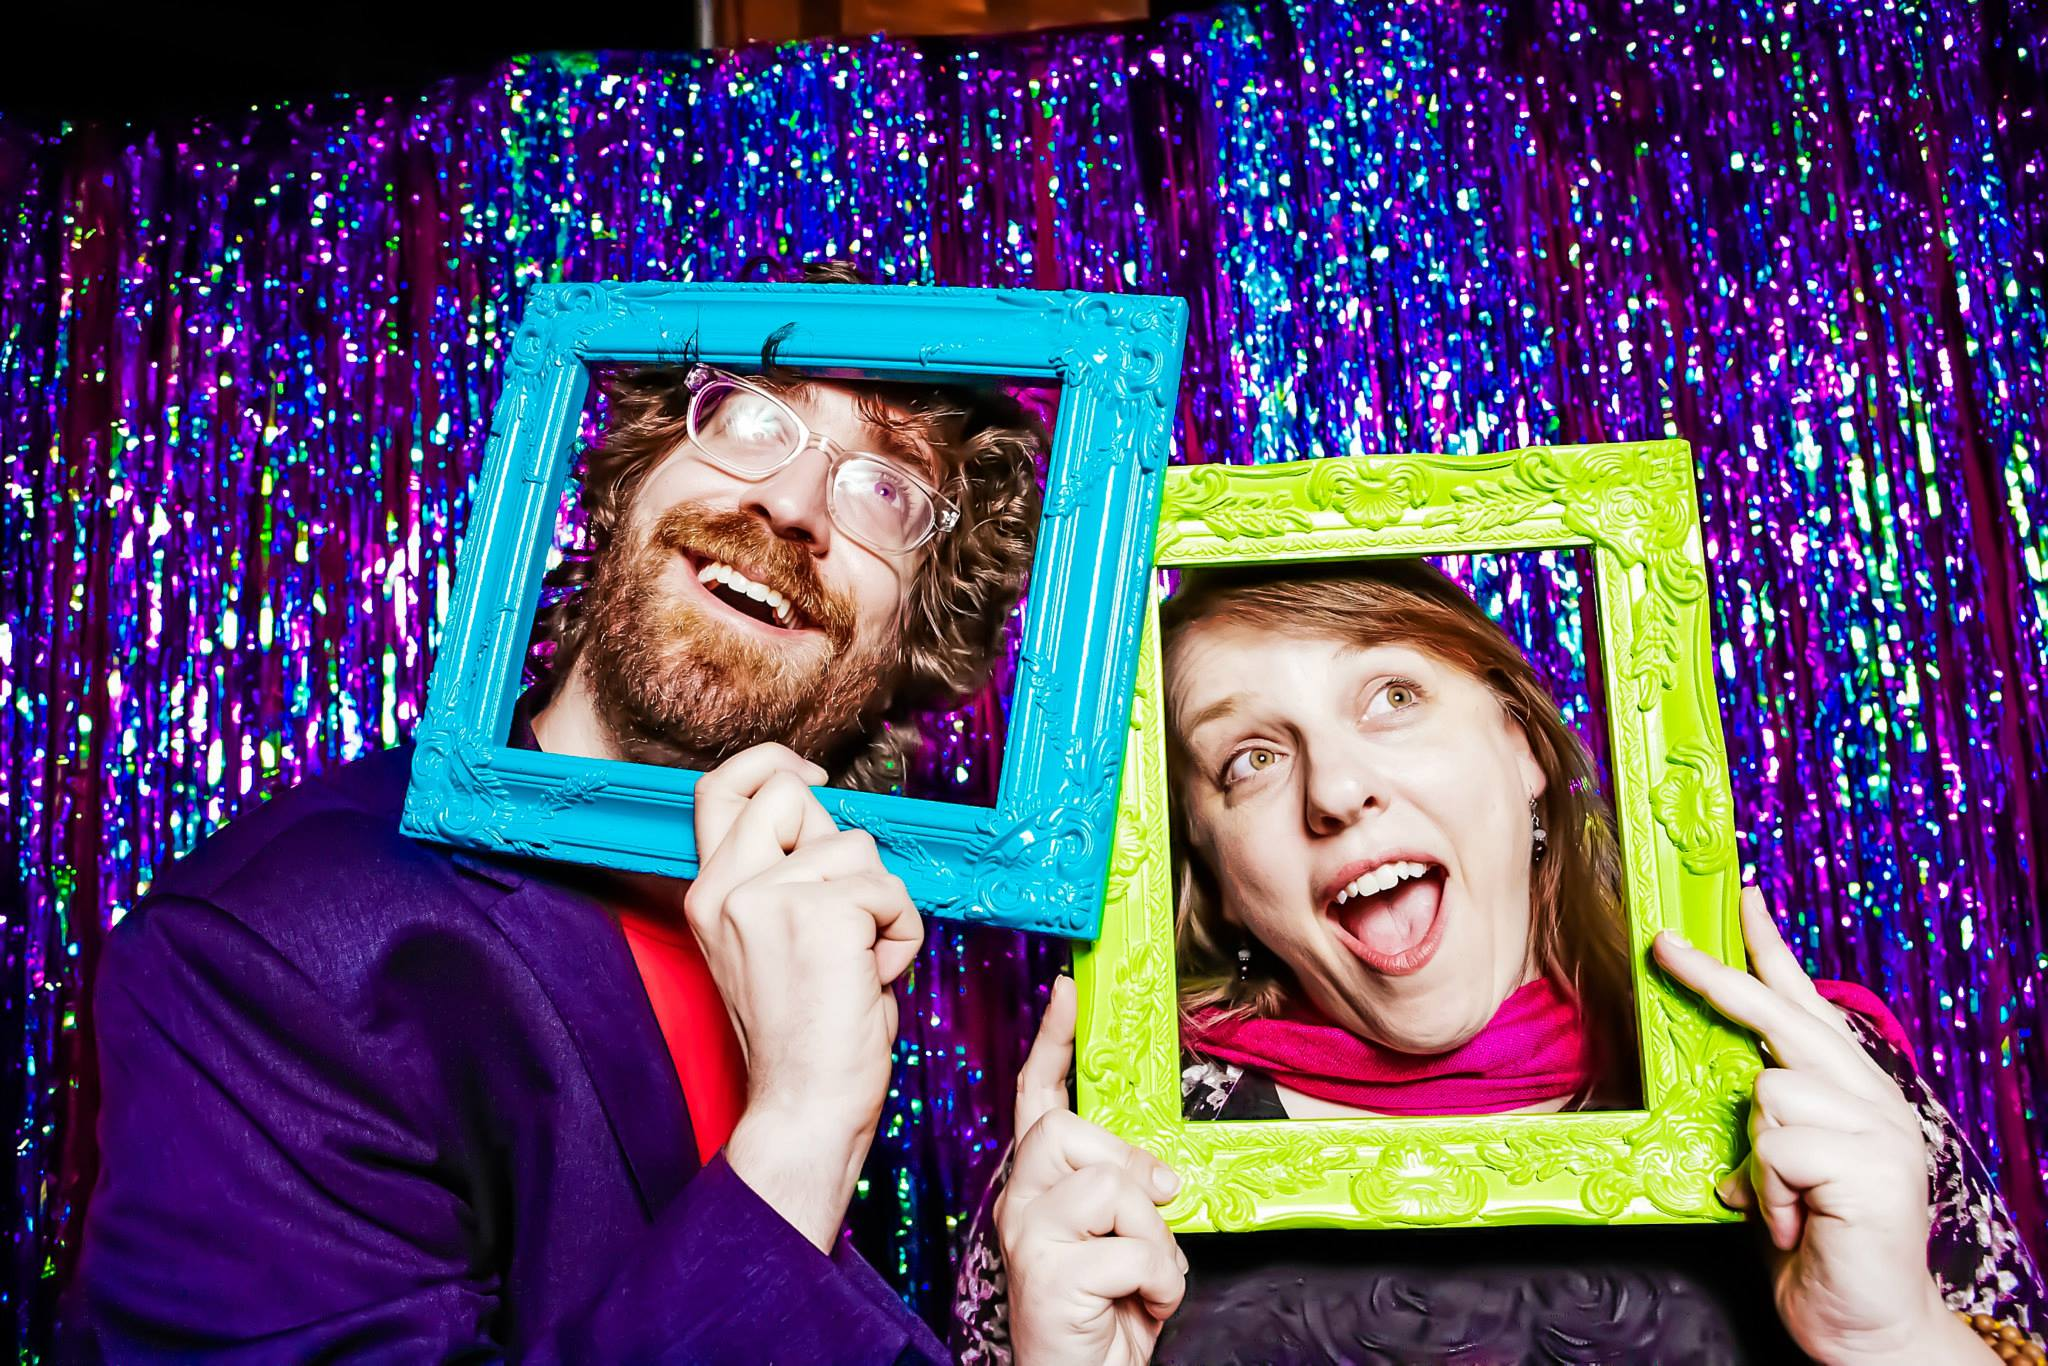 Christopher Schmitt and Ari Stiles standing next to each other in front of a glitter background, both with their heads sticking through bright blue and green picture frames, making faces.